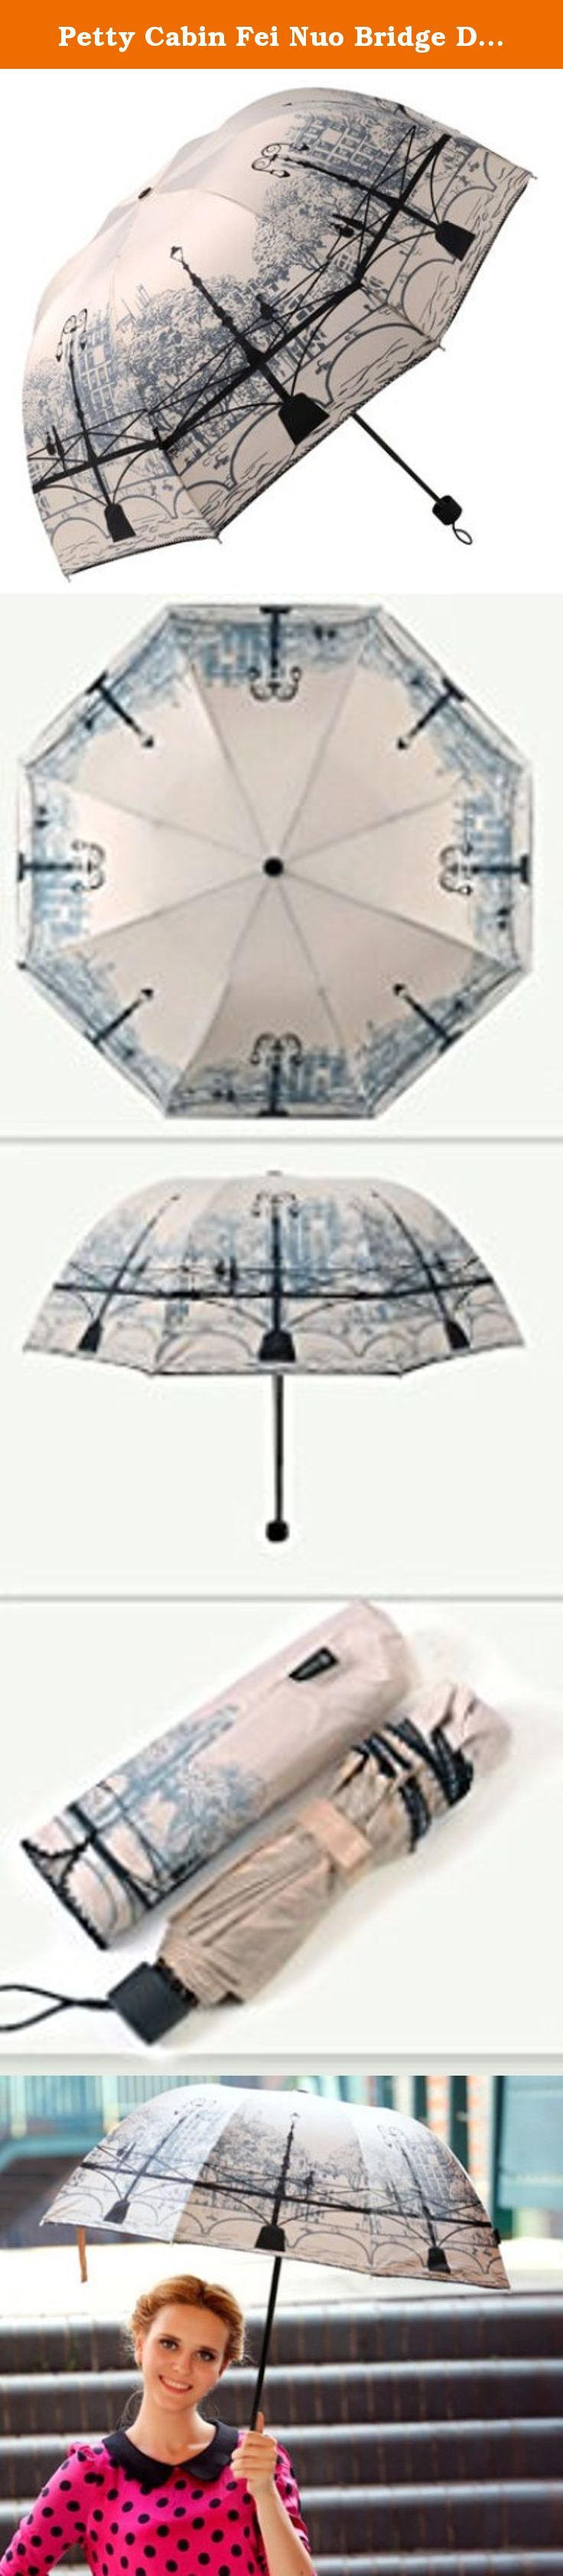 Petty Cabin Fei Nuo Bridge Design Elegant Anti-UV Sun Umbrella Triple Folding UV Protected Parasol (Beige). Triple folding anti-UV umbrellas. Delightful style and the colors beautiful. Perfect for fanciful occasions like weddings and garden parties. It is lightweight and folds to a size that will easily fit into your handbag. Definitely a Must Have under the bright sun. Package: 1* Petty Cabin Fei Nuo Bridge Design Elegant Anti-UV Sun Umbrella Triple Folding UV Protected Parasol Notice…